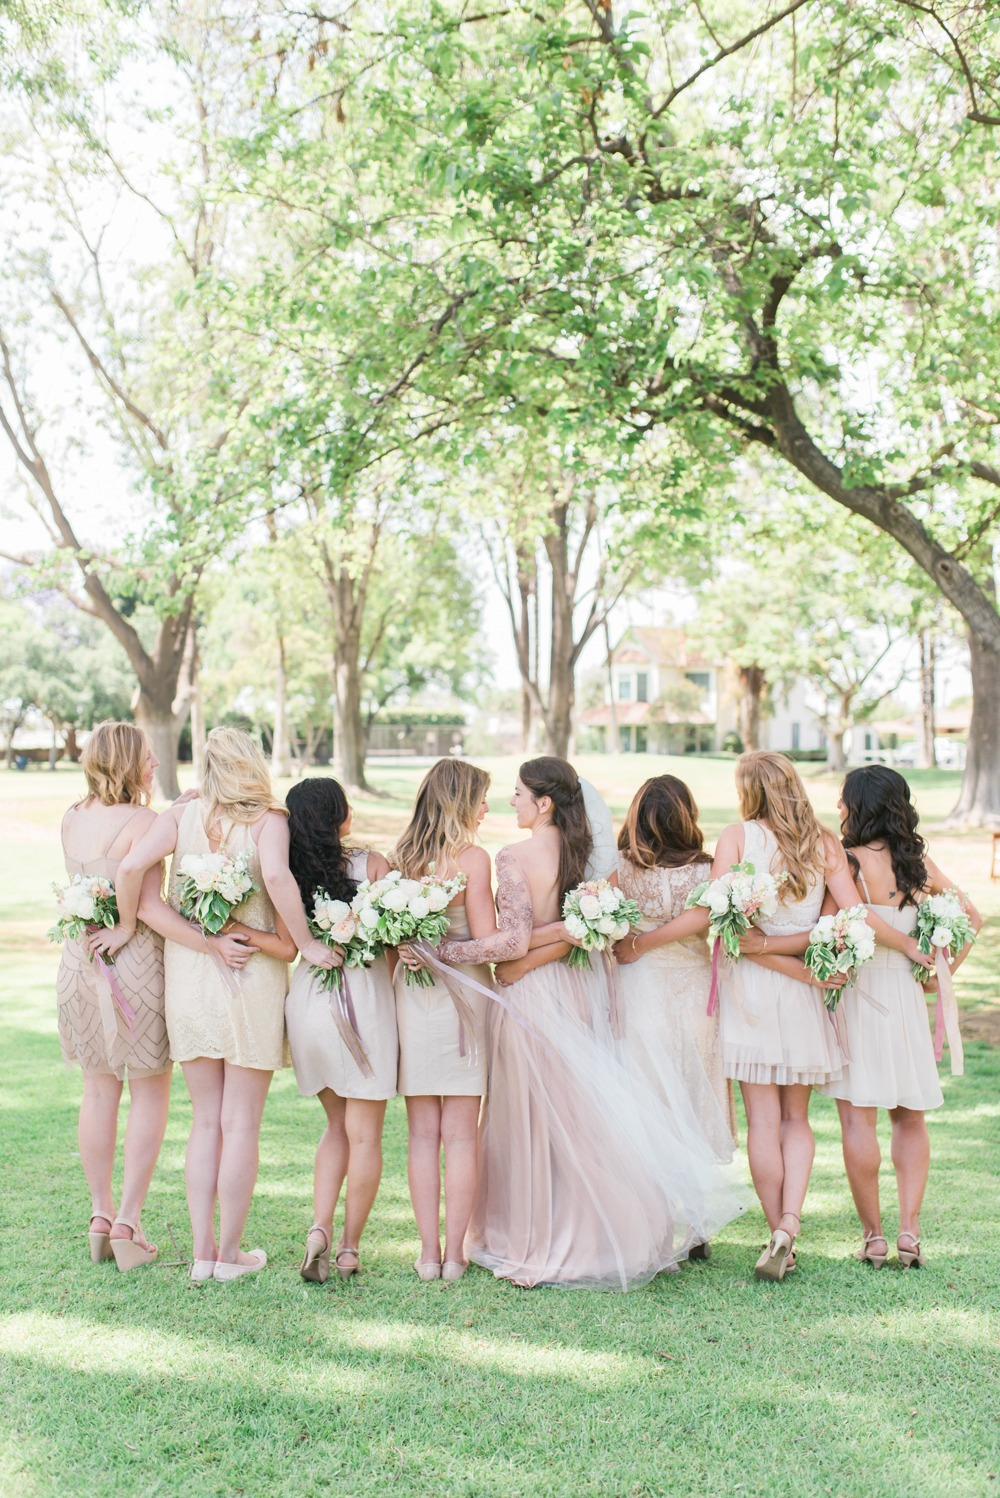 Bridesmaids in short mismatched dresses